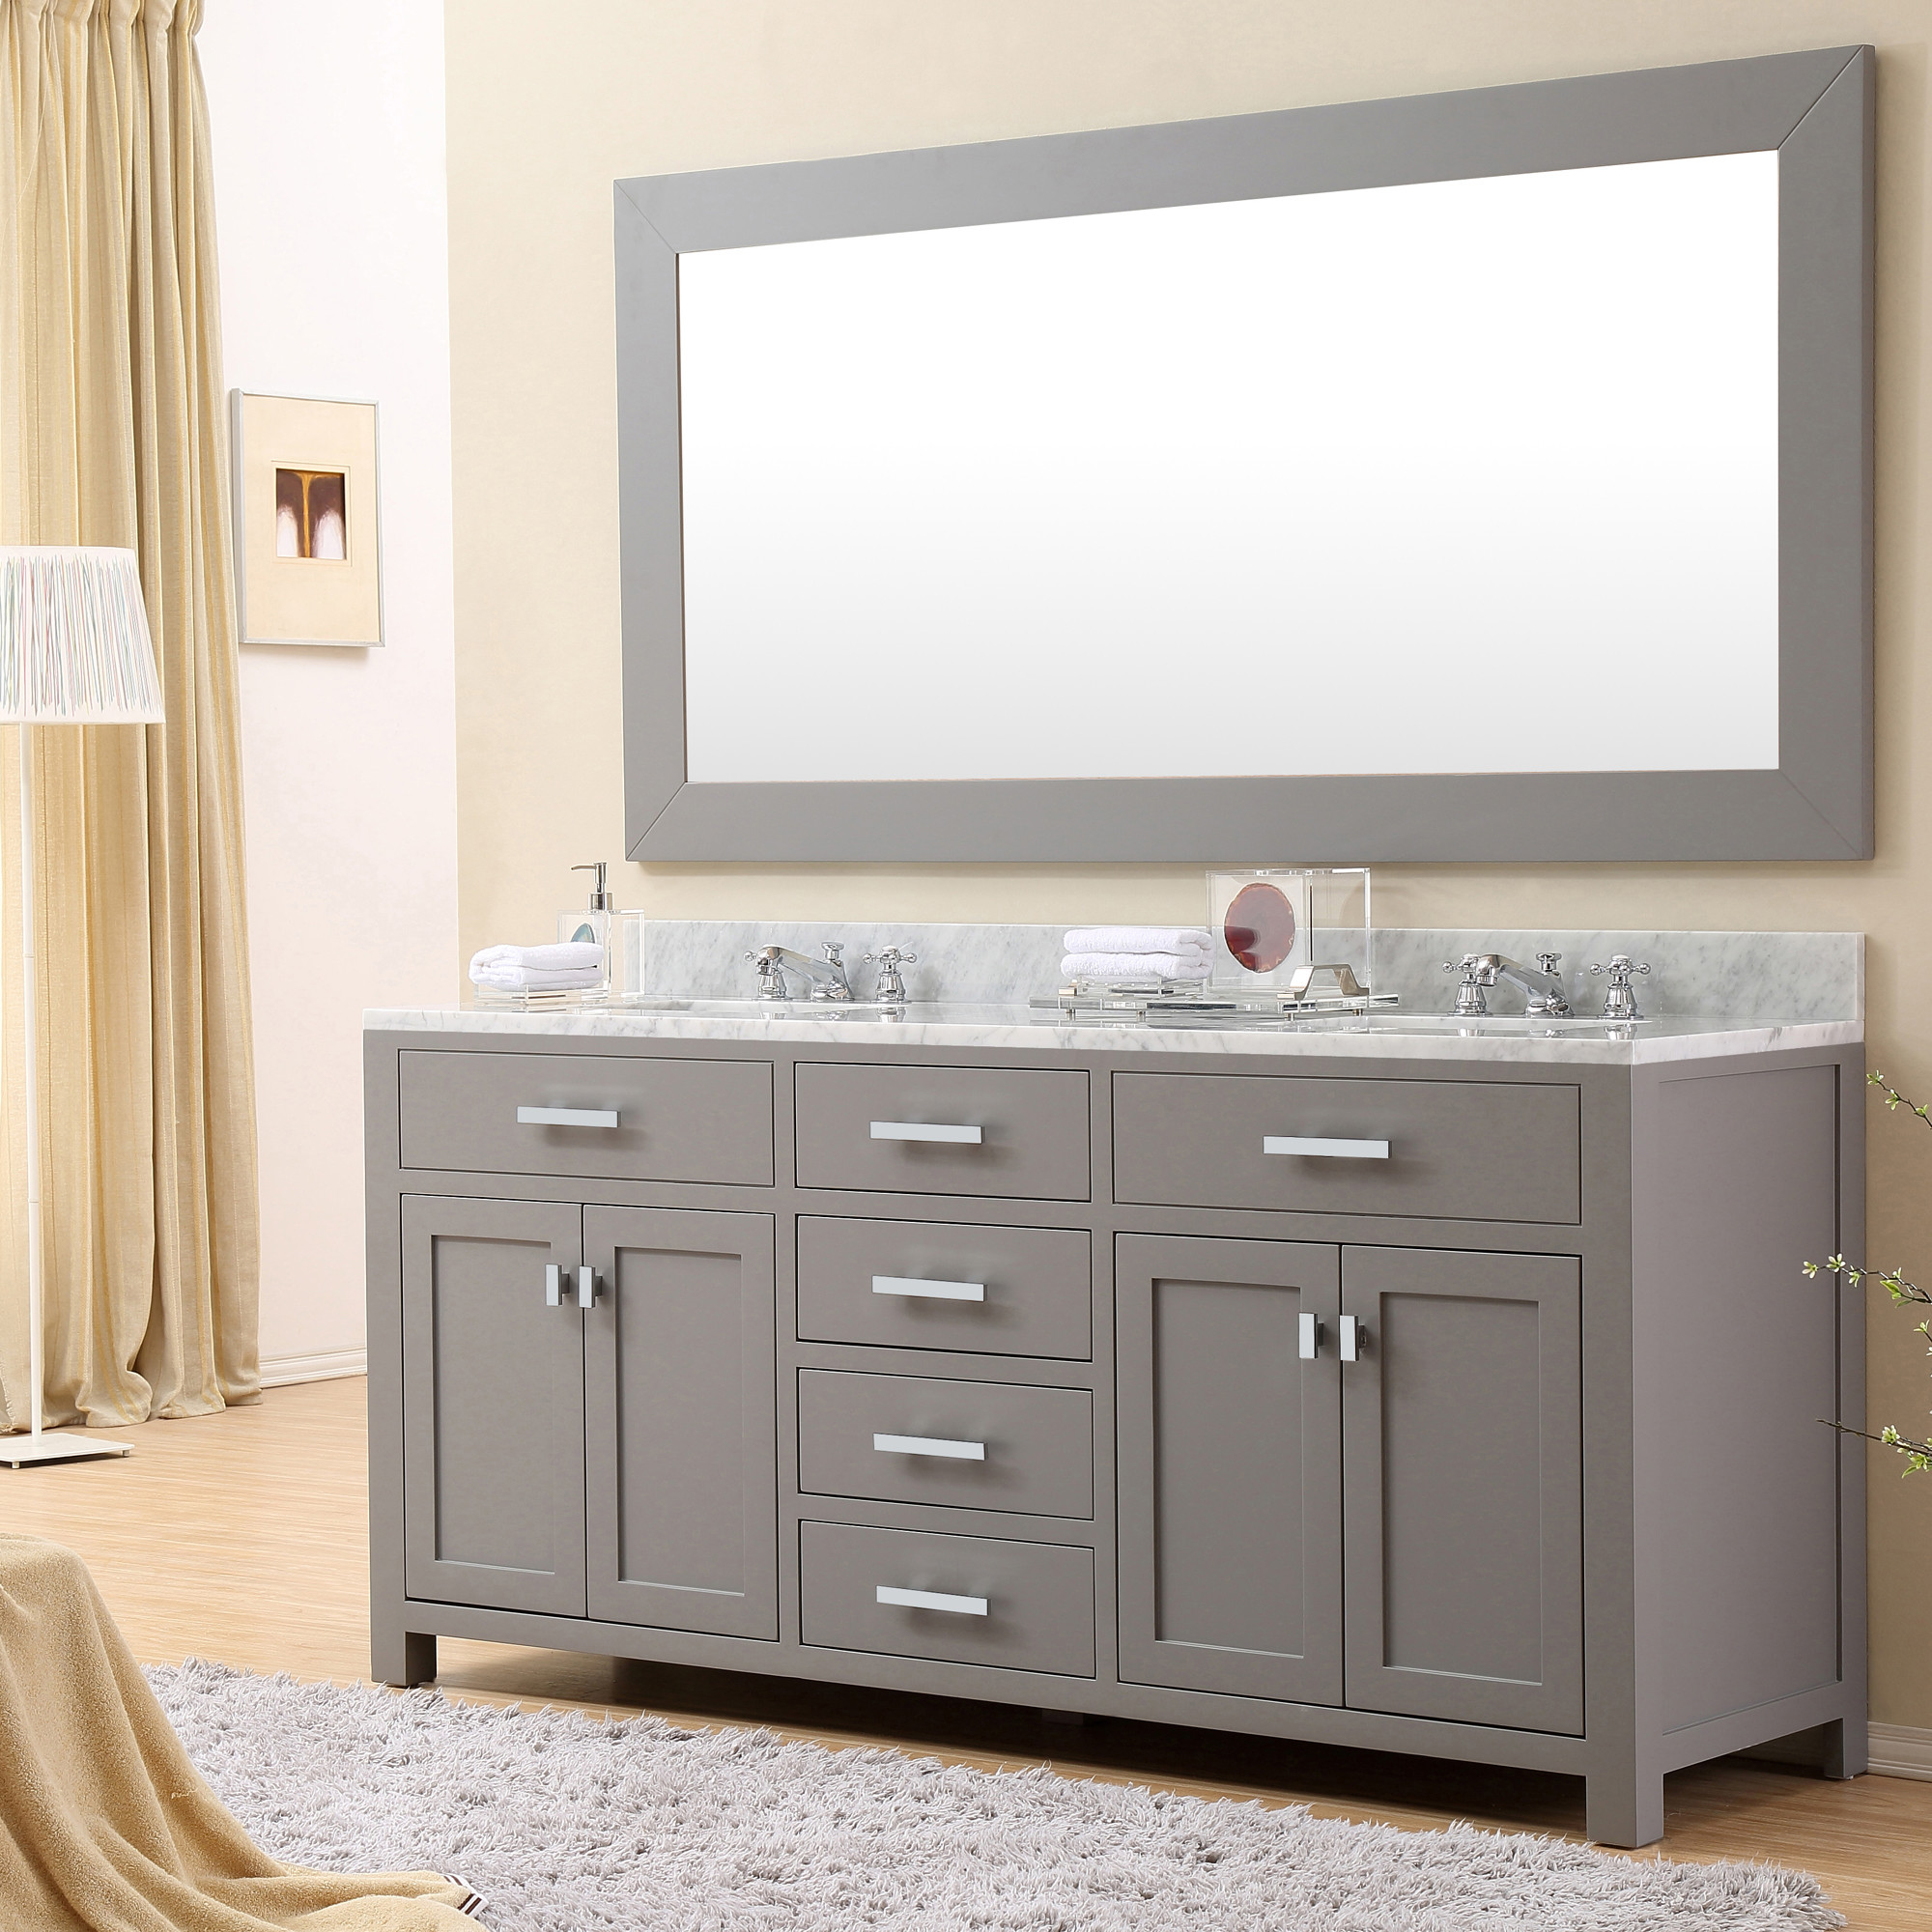 shaker australia bathroom vanity design gray of style